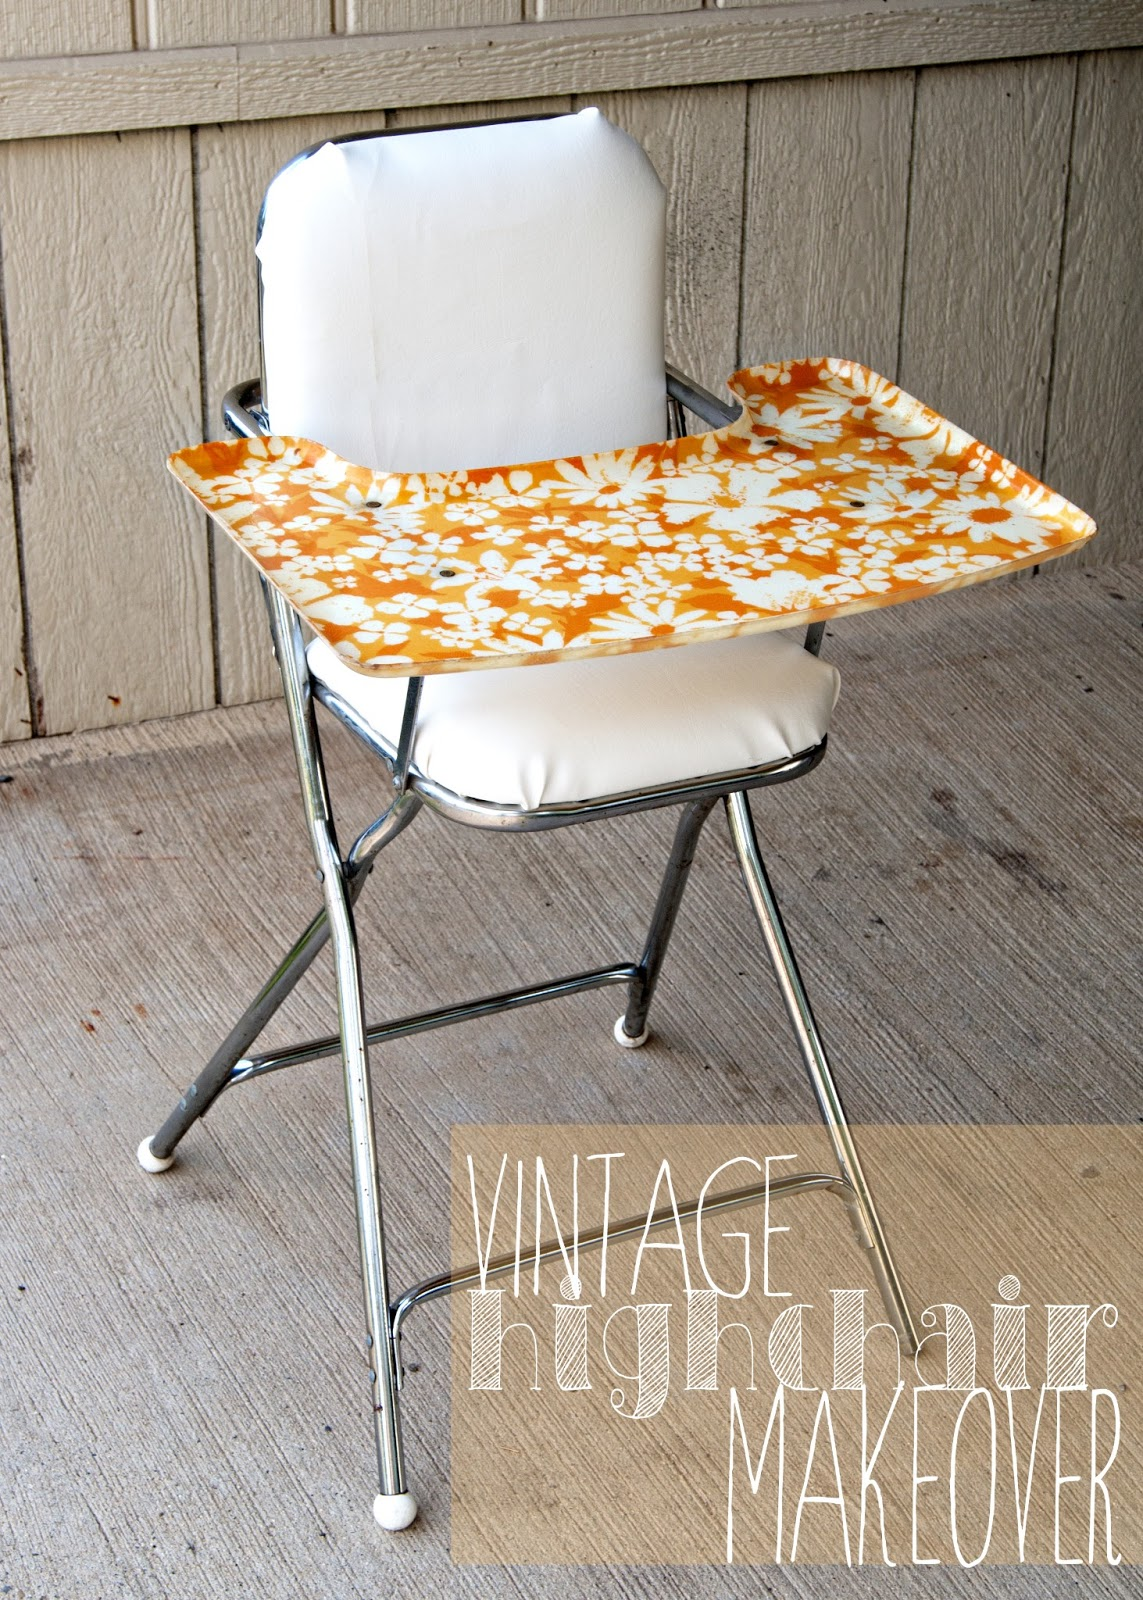 Vintage wooden high chair - Vintage Highchair Makeover